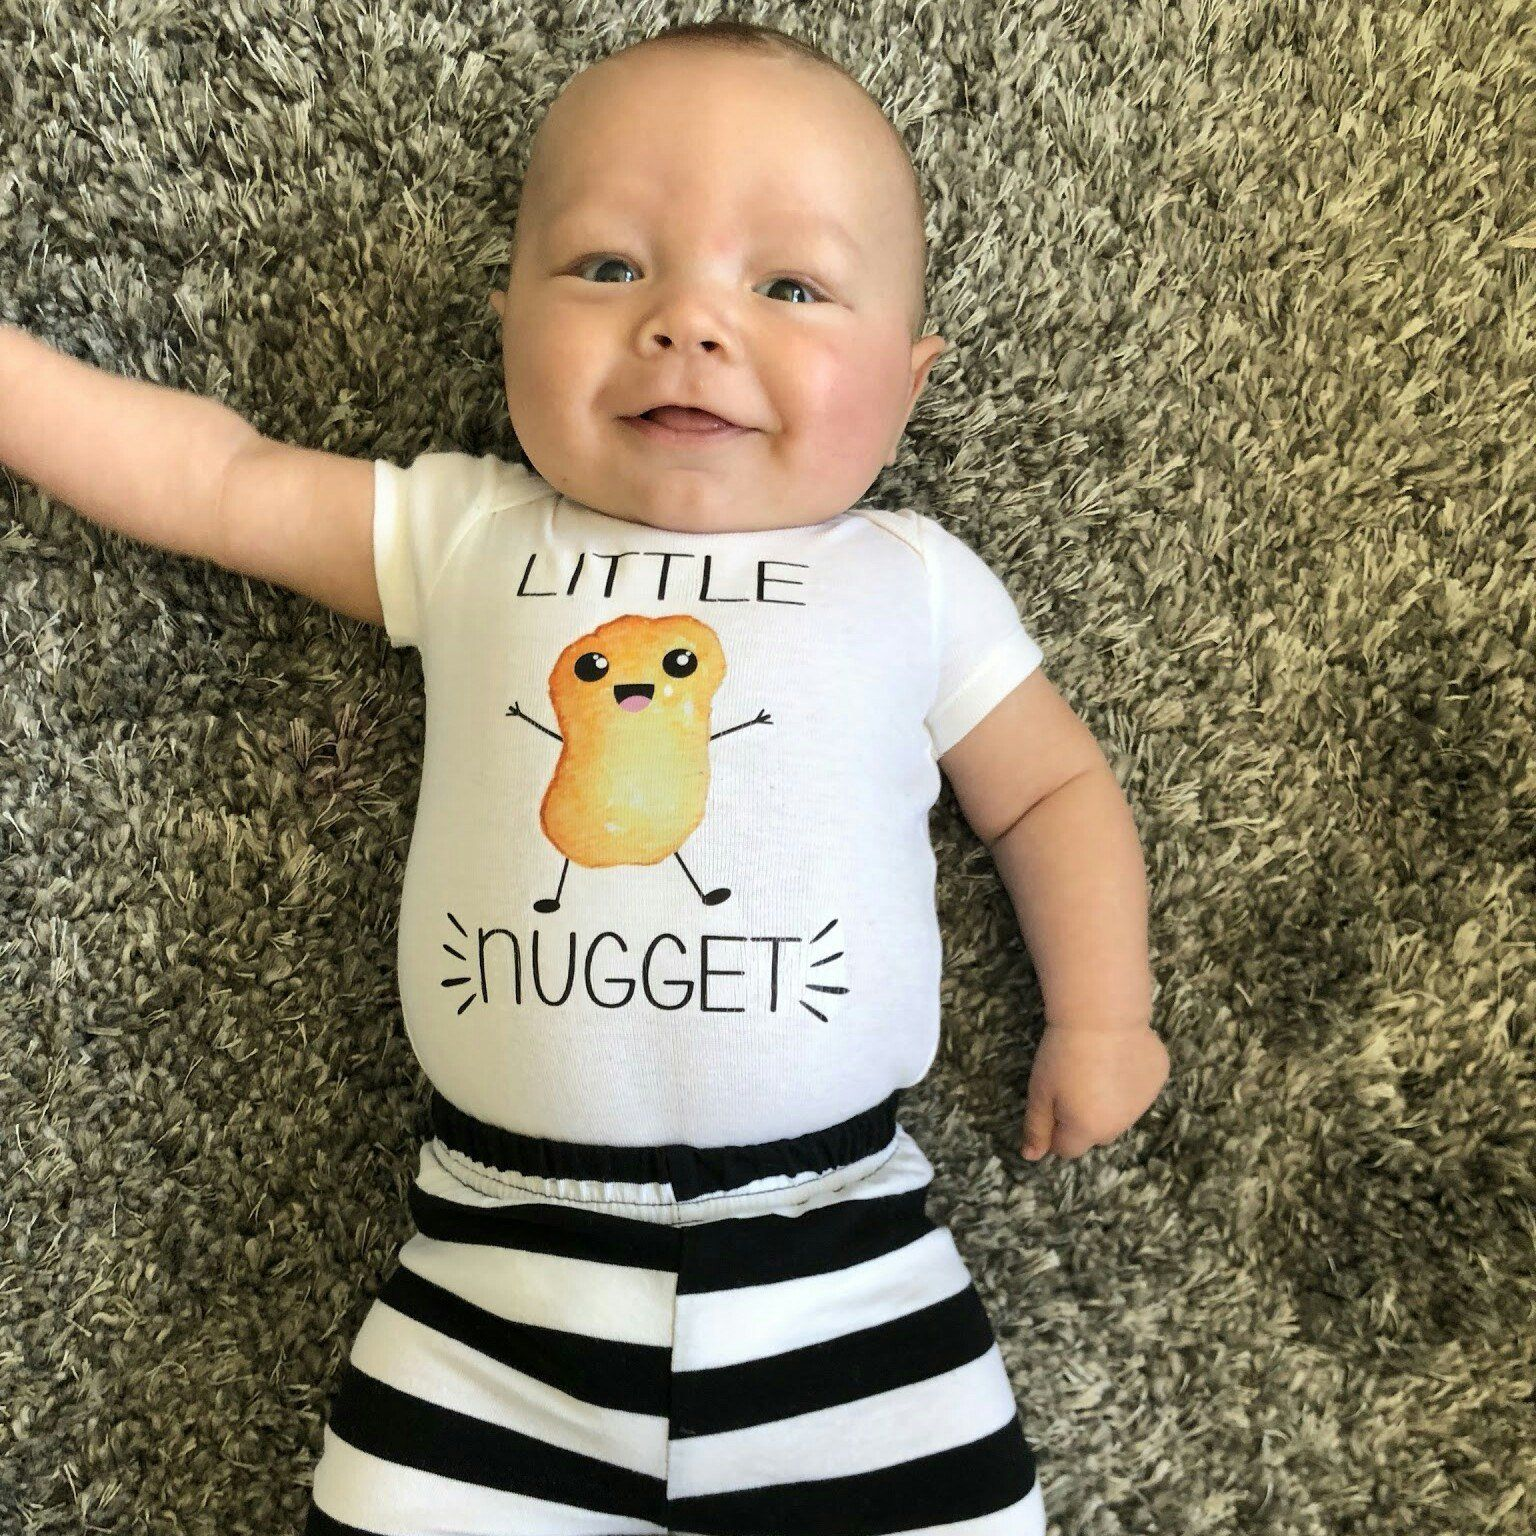 b4ebdbe2a461 Little Nugget Onesies® Brand or Carter s® Bodysuit Fast Food Baby ...